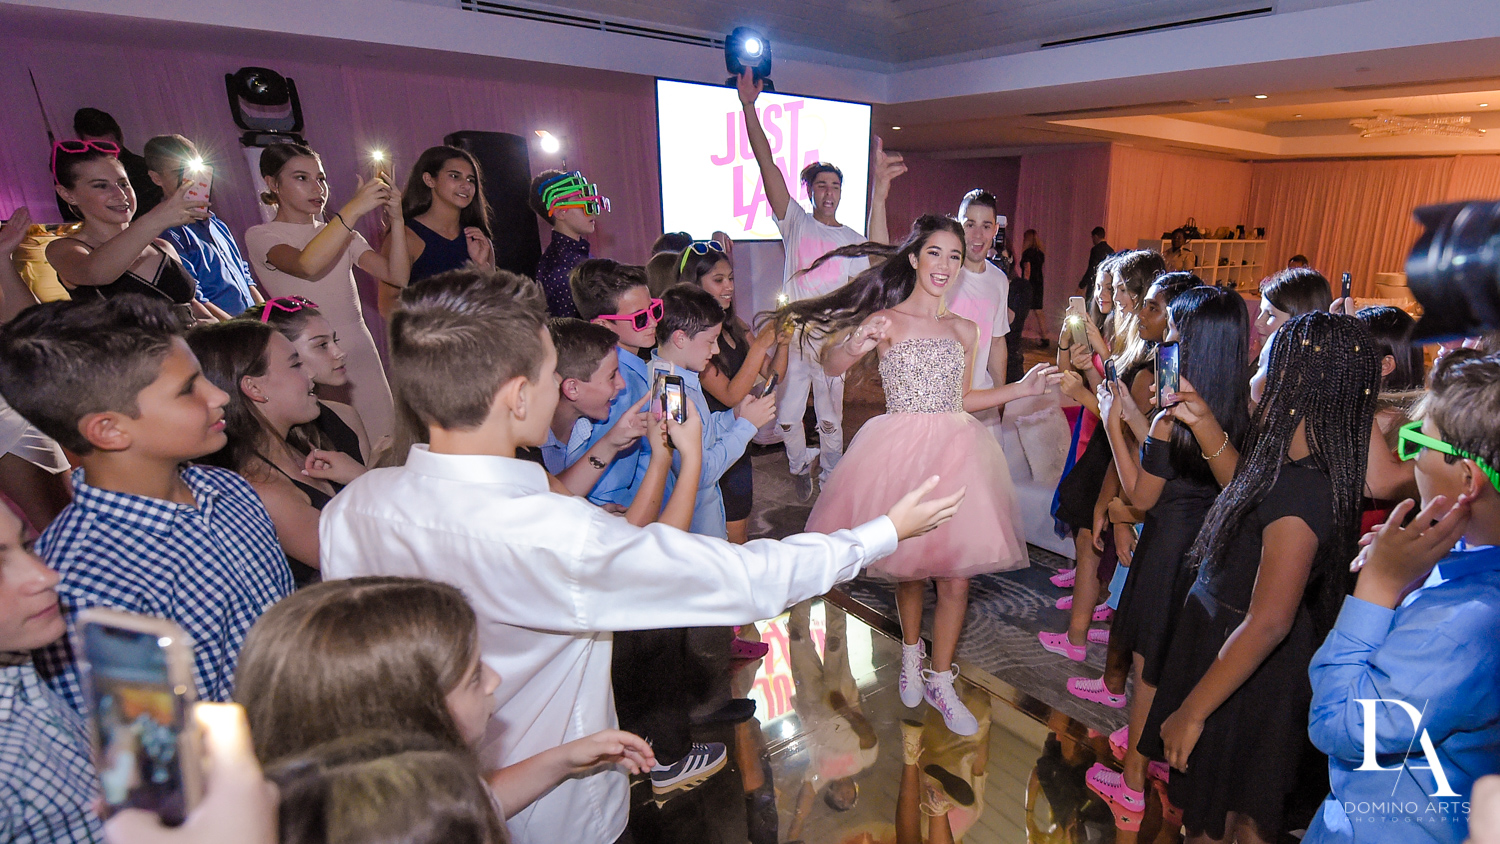 Best party pictures at Bat Mitzvah at Saint Andrews Country Club South Florida by Domino Arts Photography